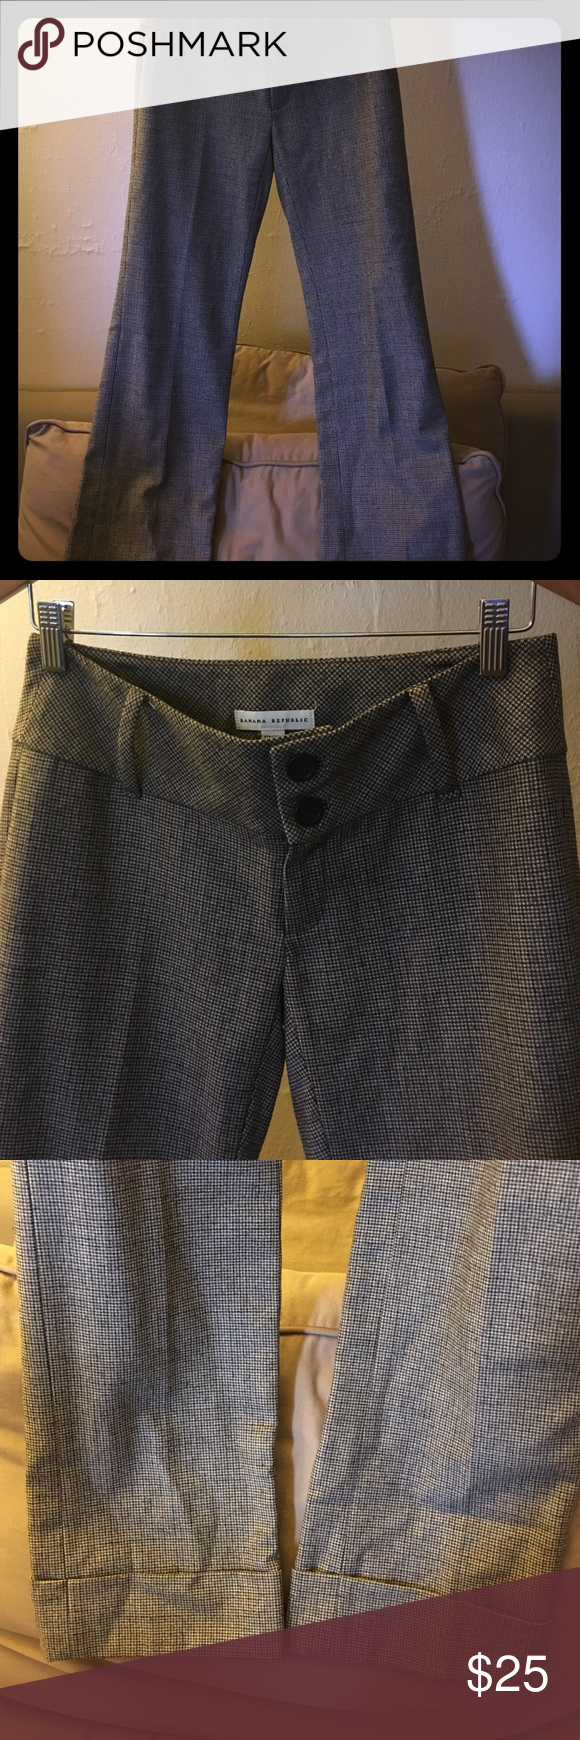 Banana republic wool pant. Brown banana republic wool pant. Wide waist and legs with cuffed bottoms. Lined with silky like material, so it's not itchy. Banana Republic Pants Boot Cut & Flare